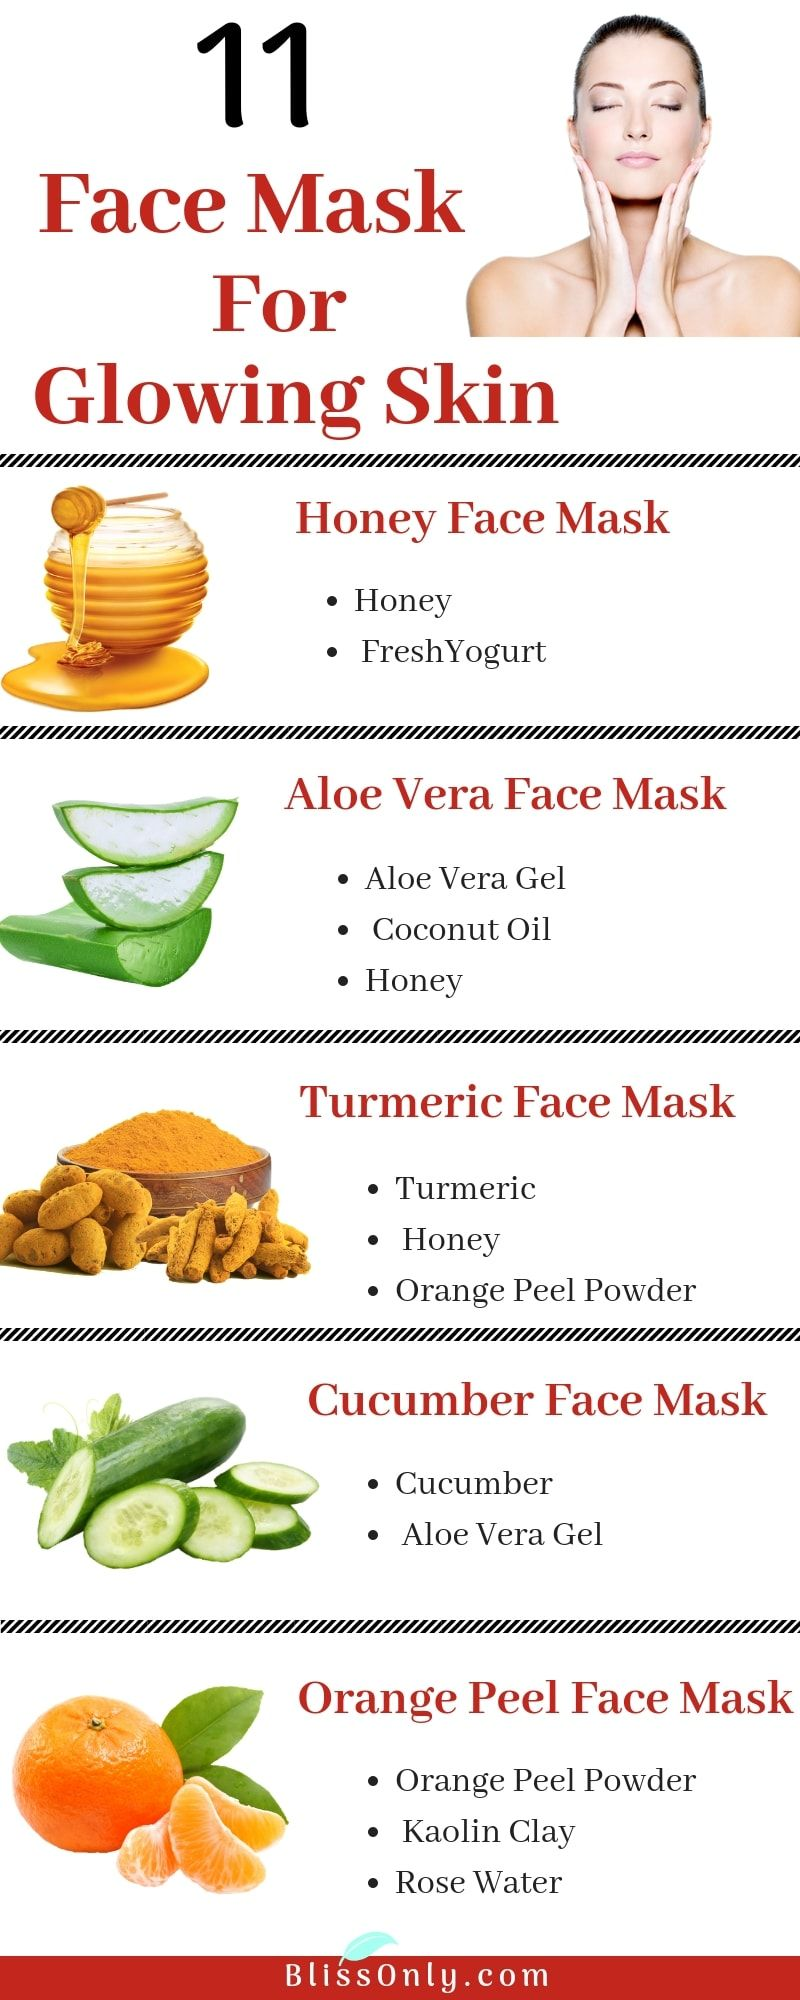 11 Simple Homemade Face Masks For Glowing Skin BlissOnly